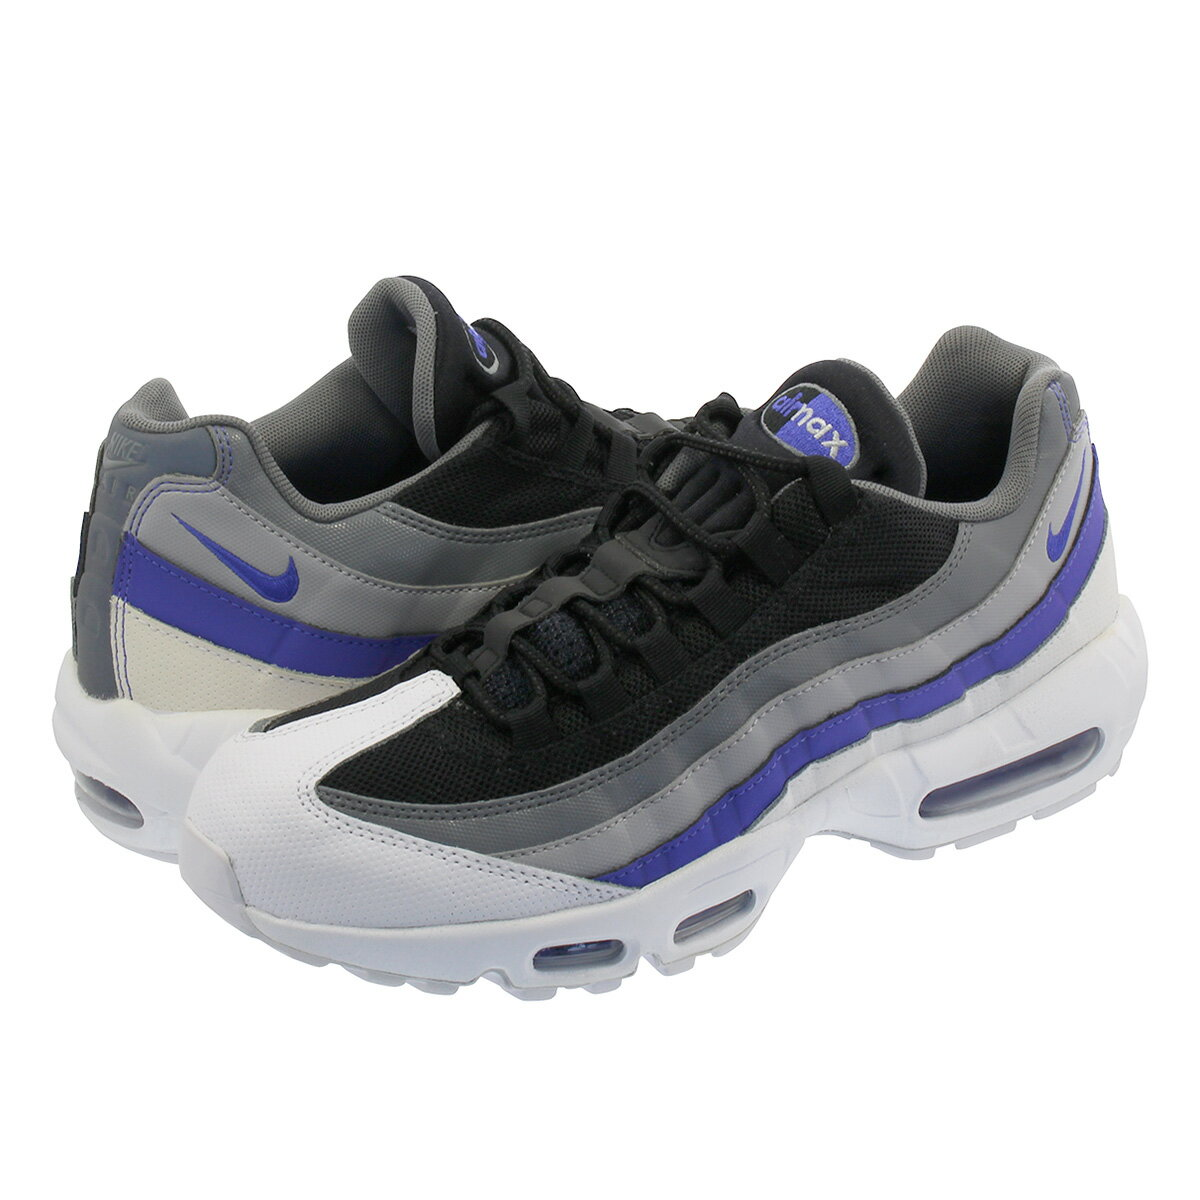 NIKE AIR MAX 95 ESSENTIAL ナイキ エア マックス 95 エッセンシャル WHITE/PERSIAN VIOLET/COOL GREY 749766-110